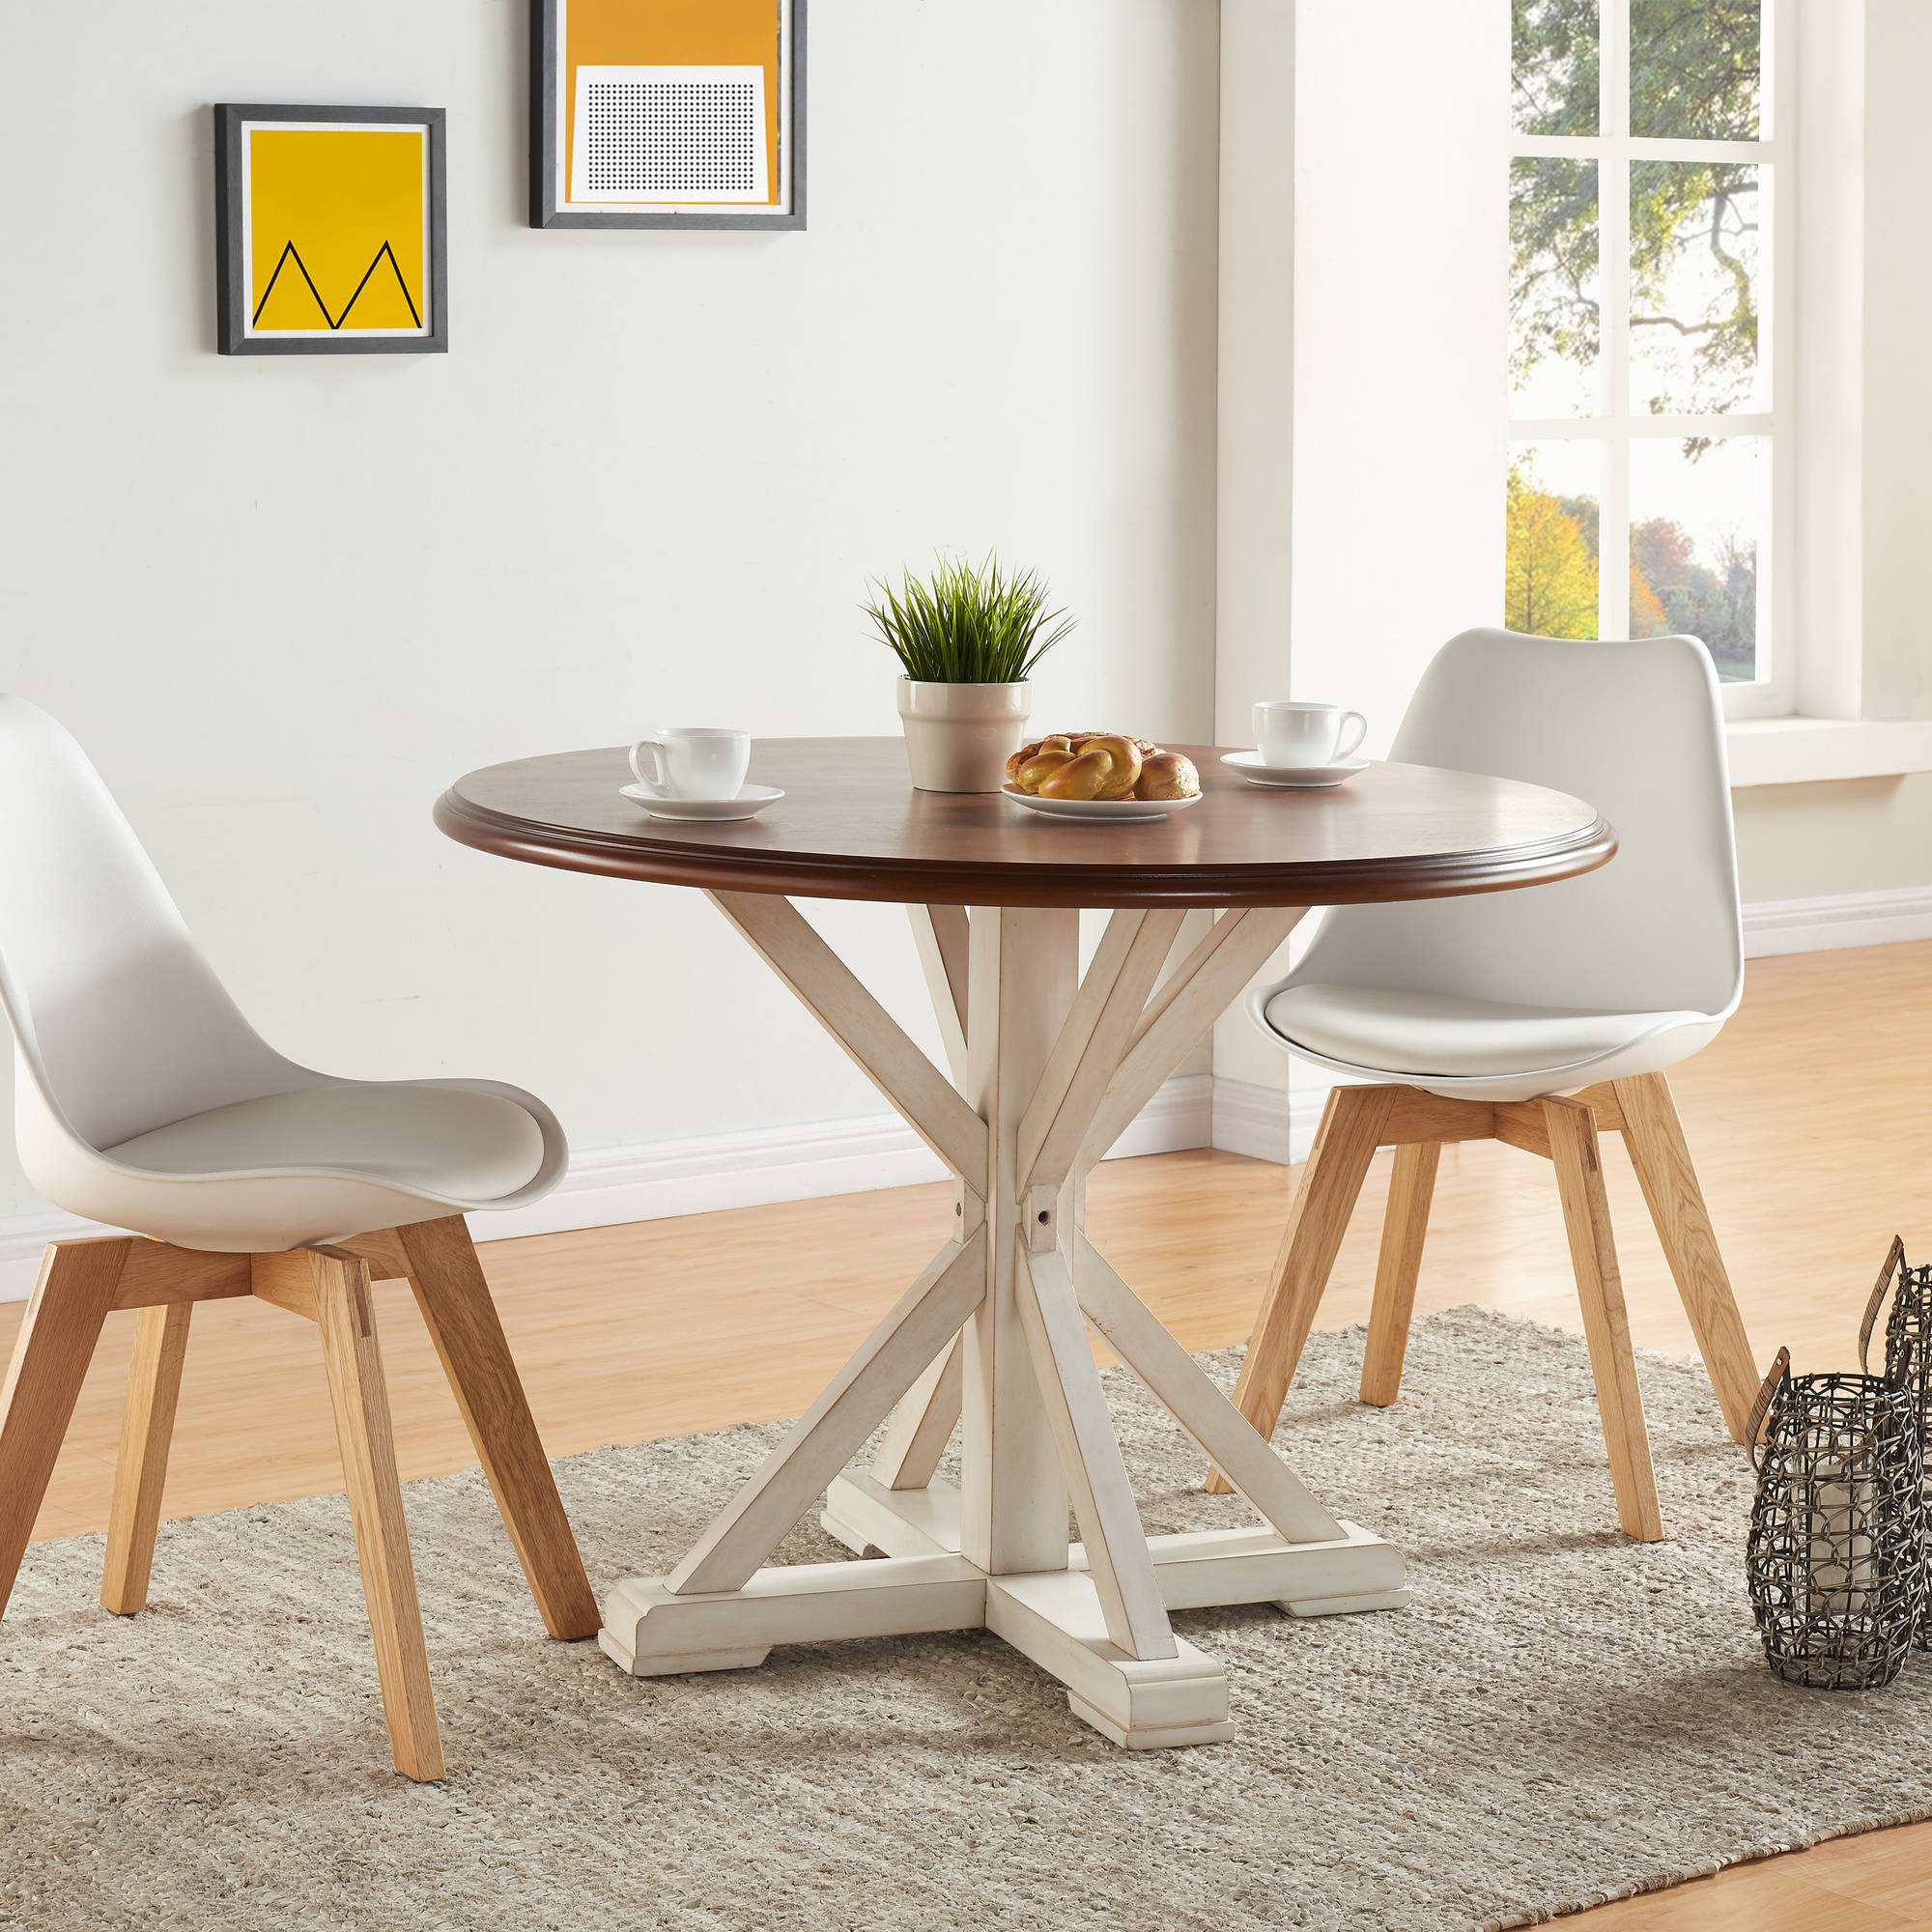 Southern Enterprises Beatha Farmhouse Dining Table, Antique White with Dark Tobacco